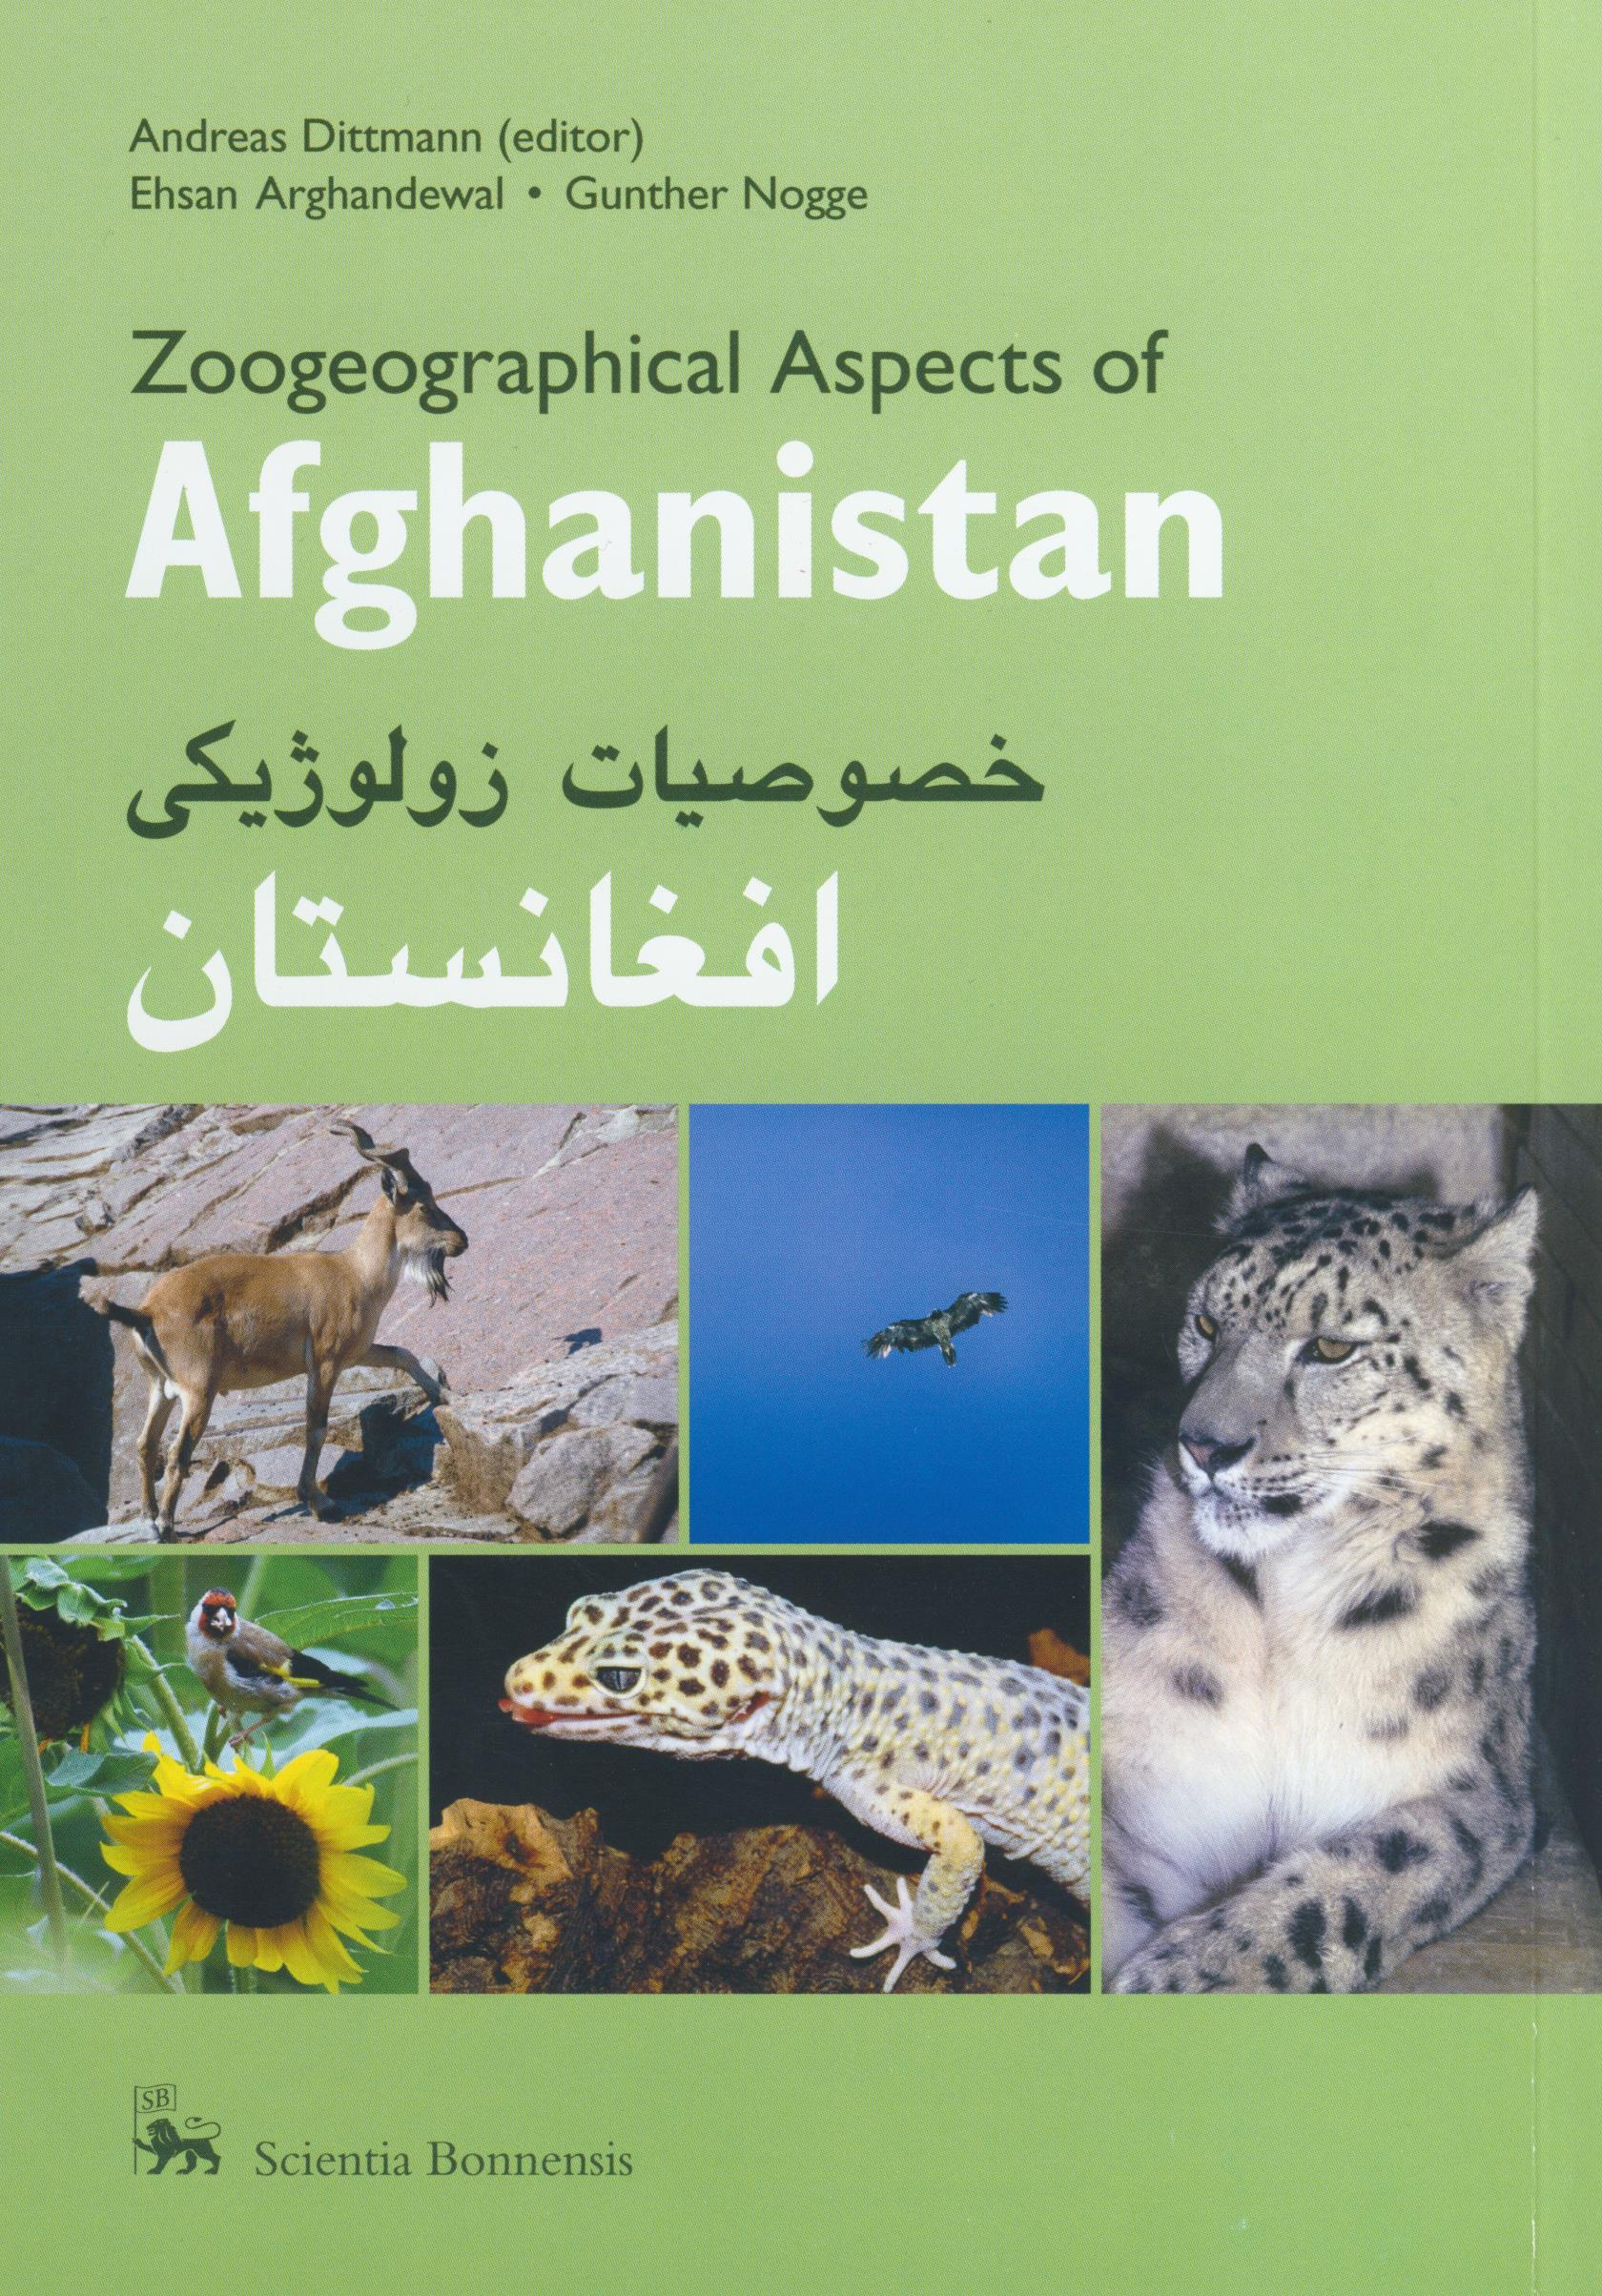 zoogeographical aspescts of afg cover